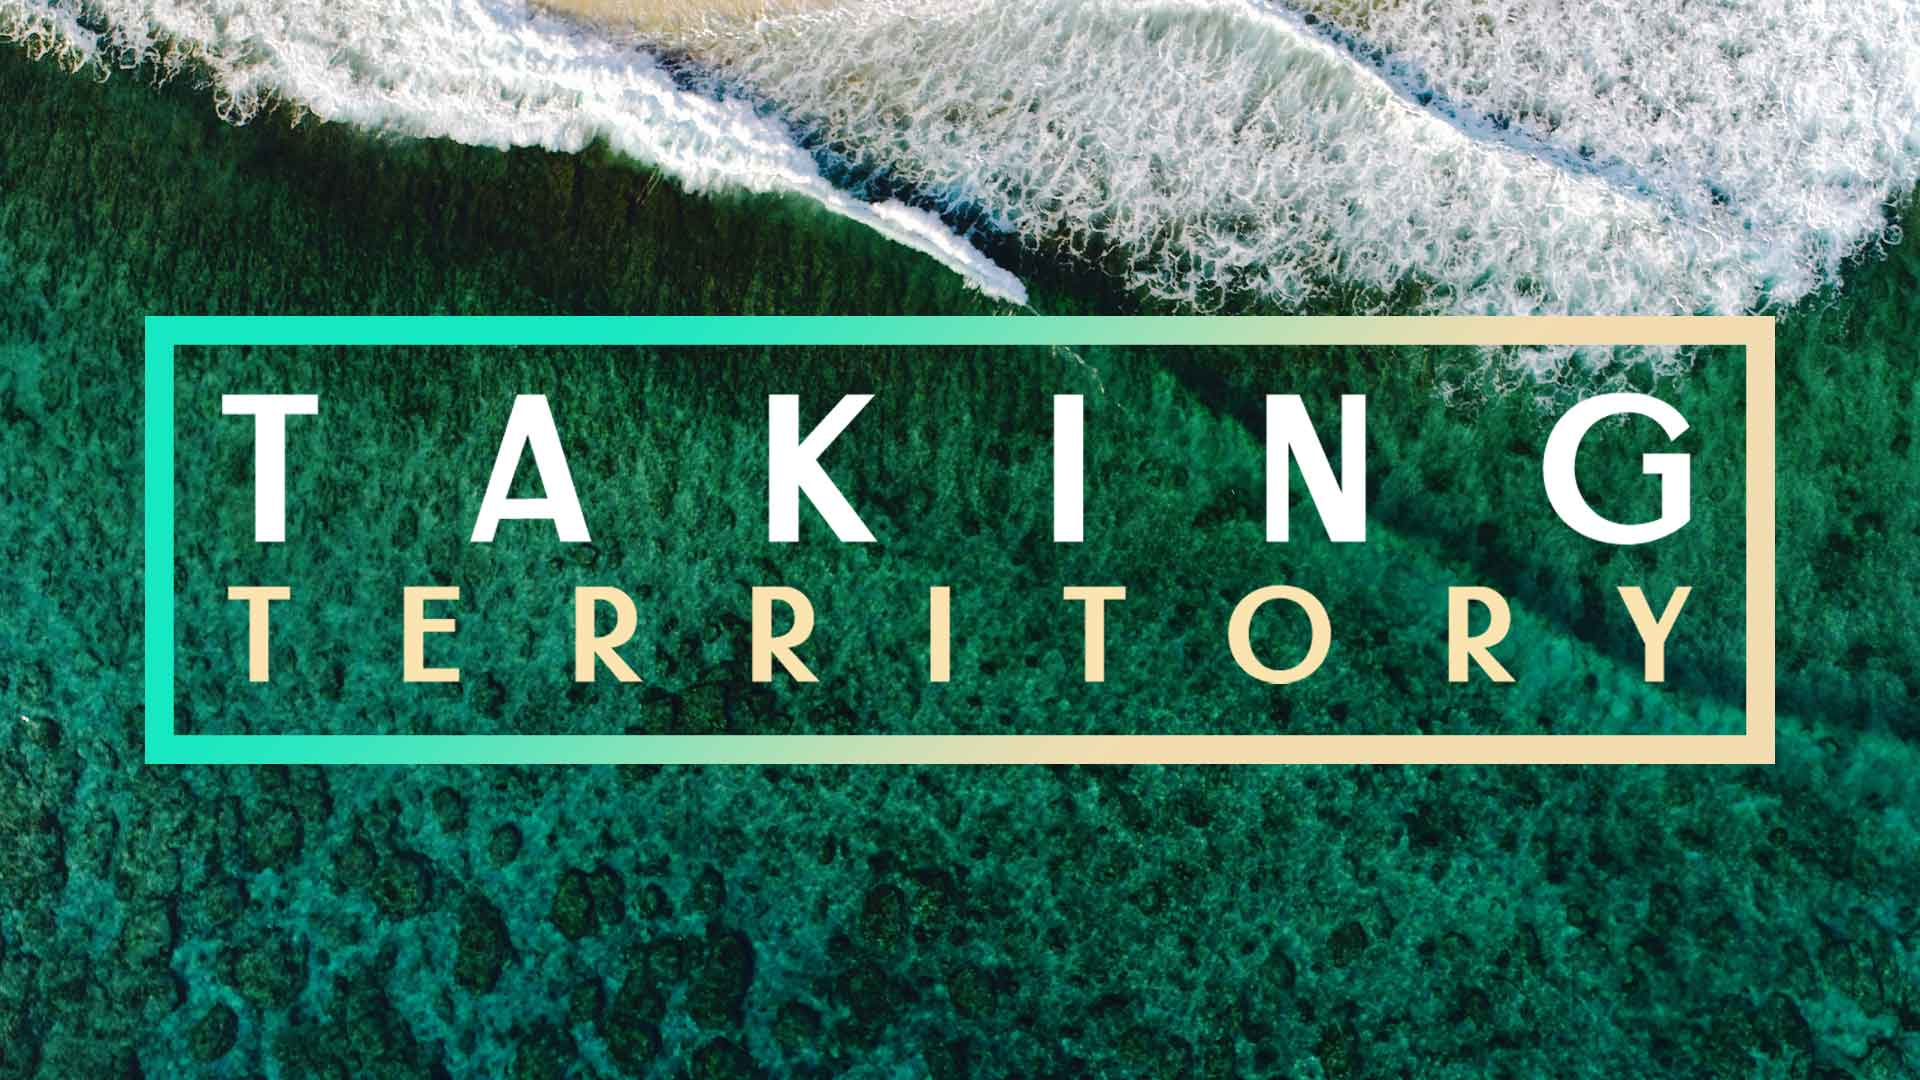 Taking Territory - Ps. Lucas Connell